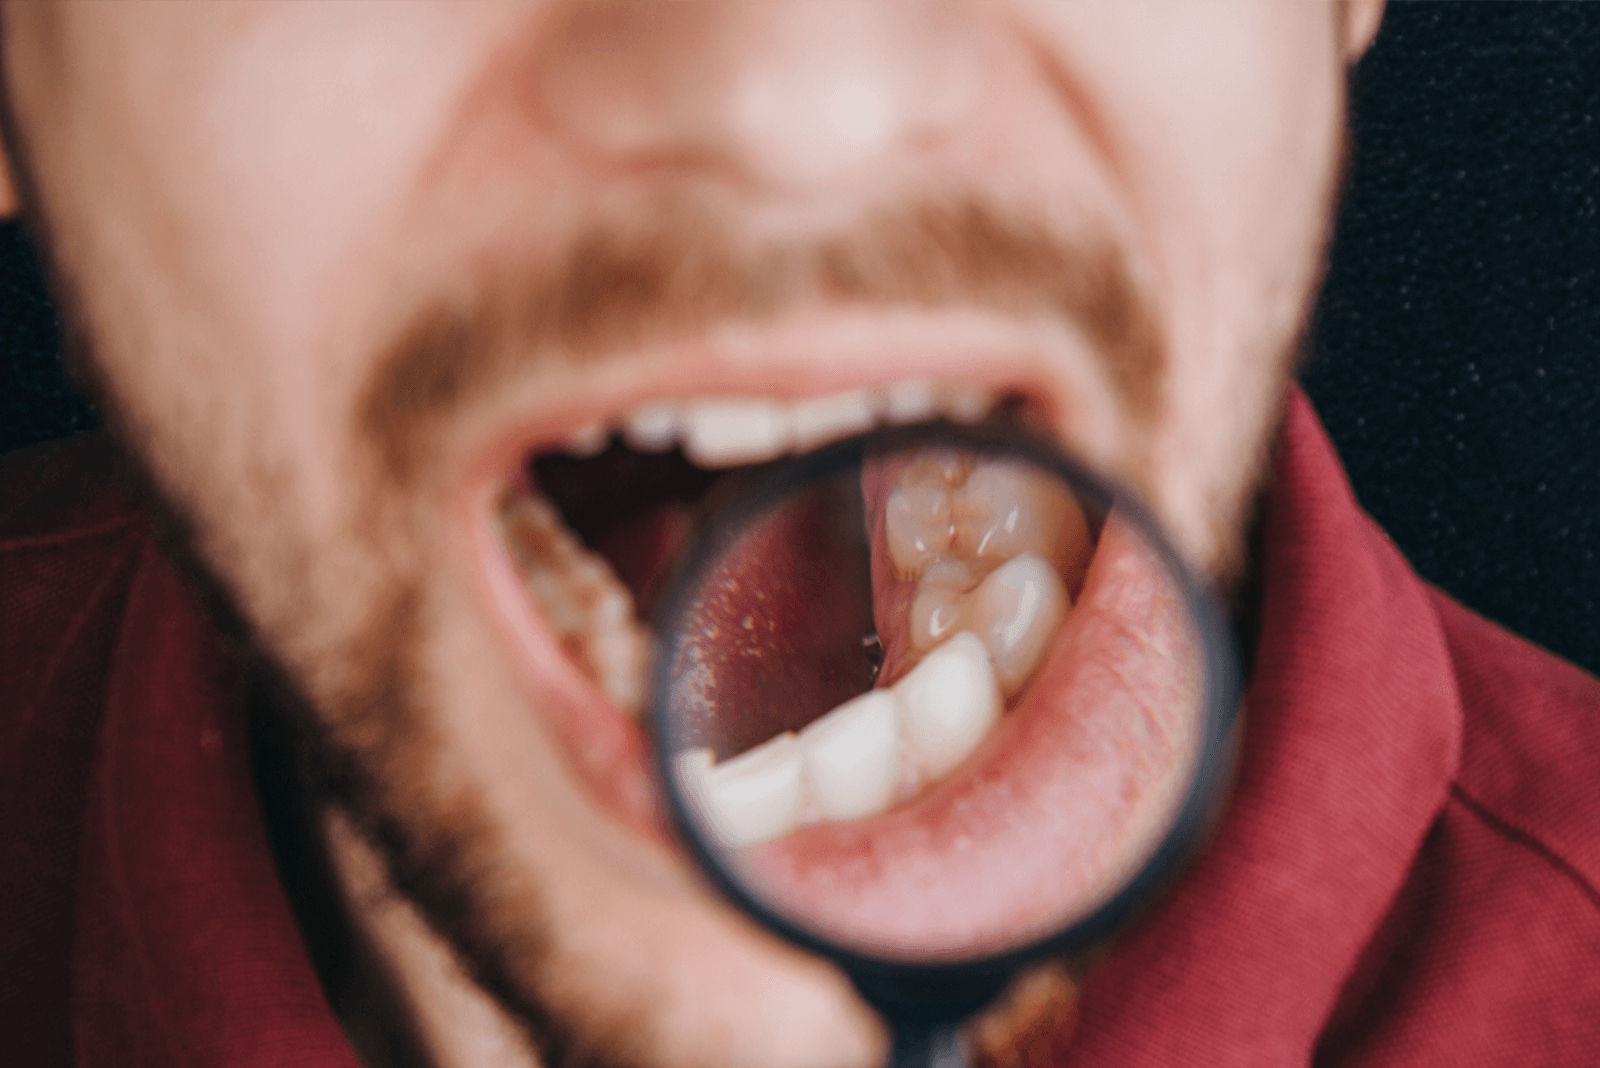 Oral Cancer: Symptoms, Causes, Treatment in India, and More